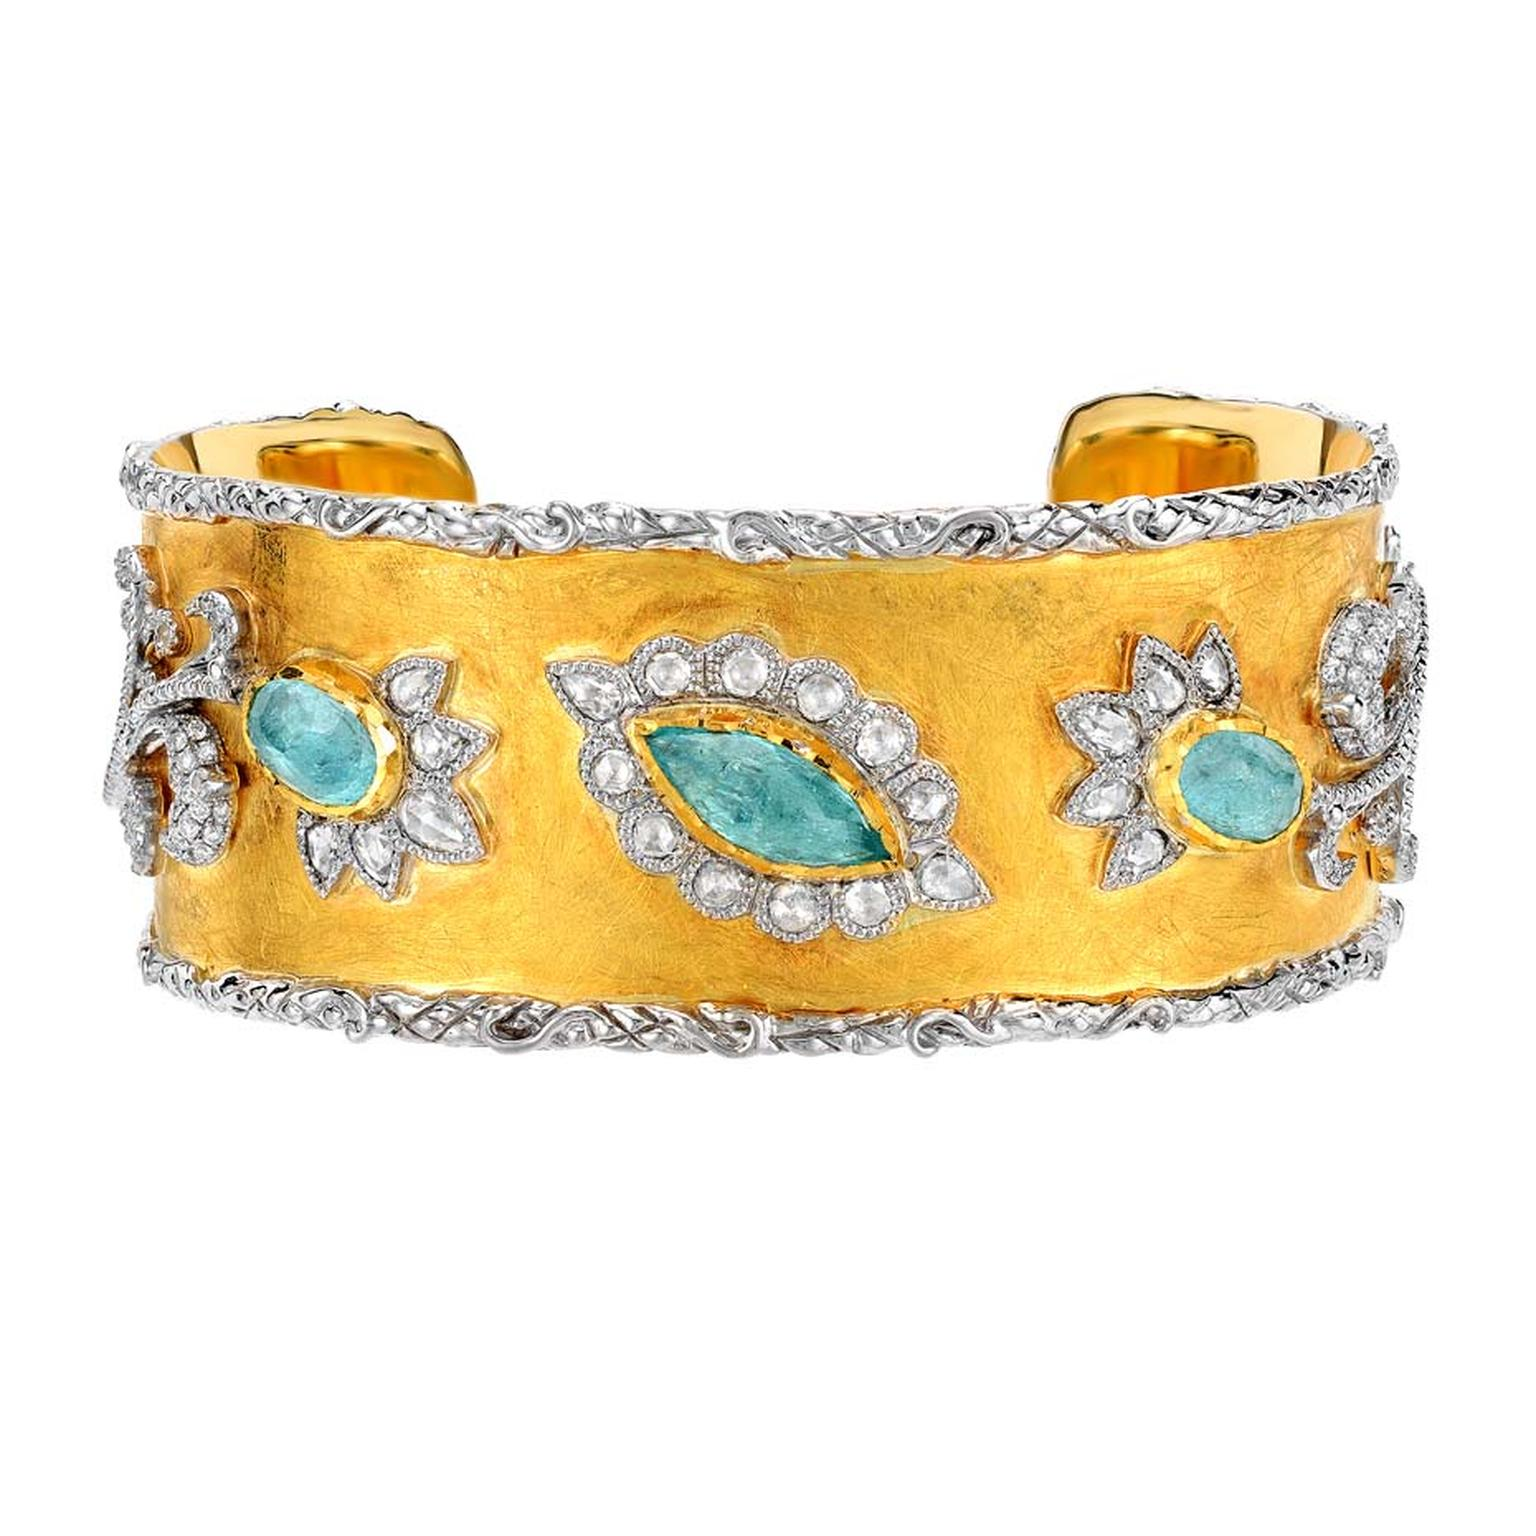 Victor Velyan gold bracelet with Paraiba tourmalines and diamonds.